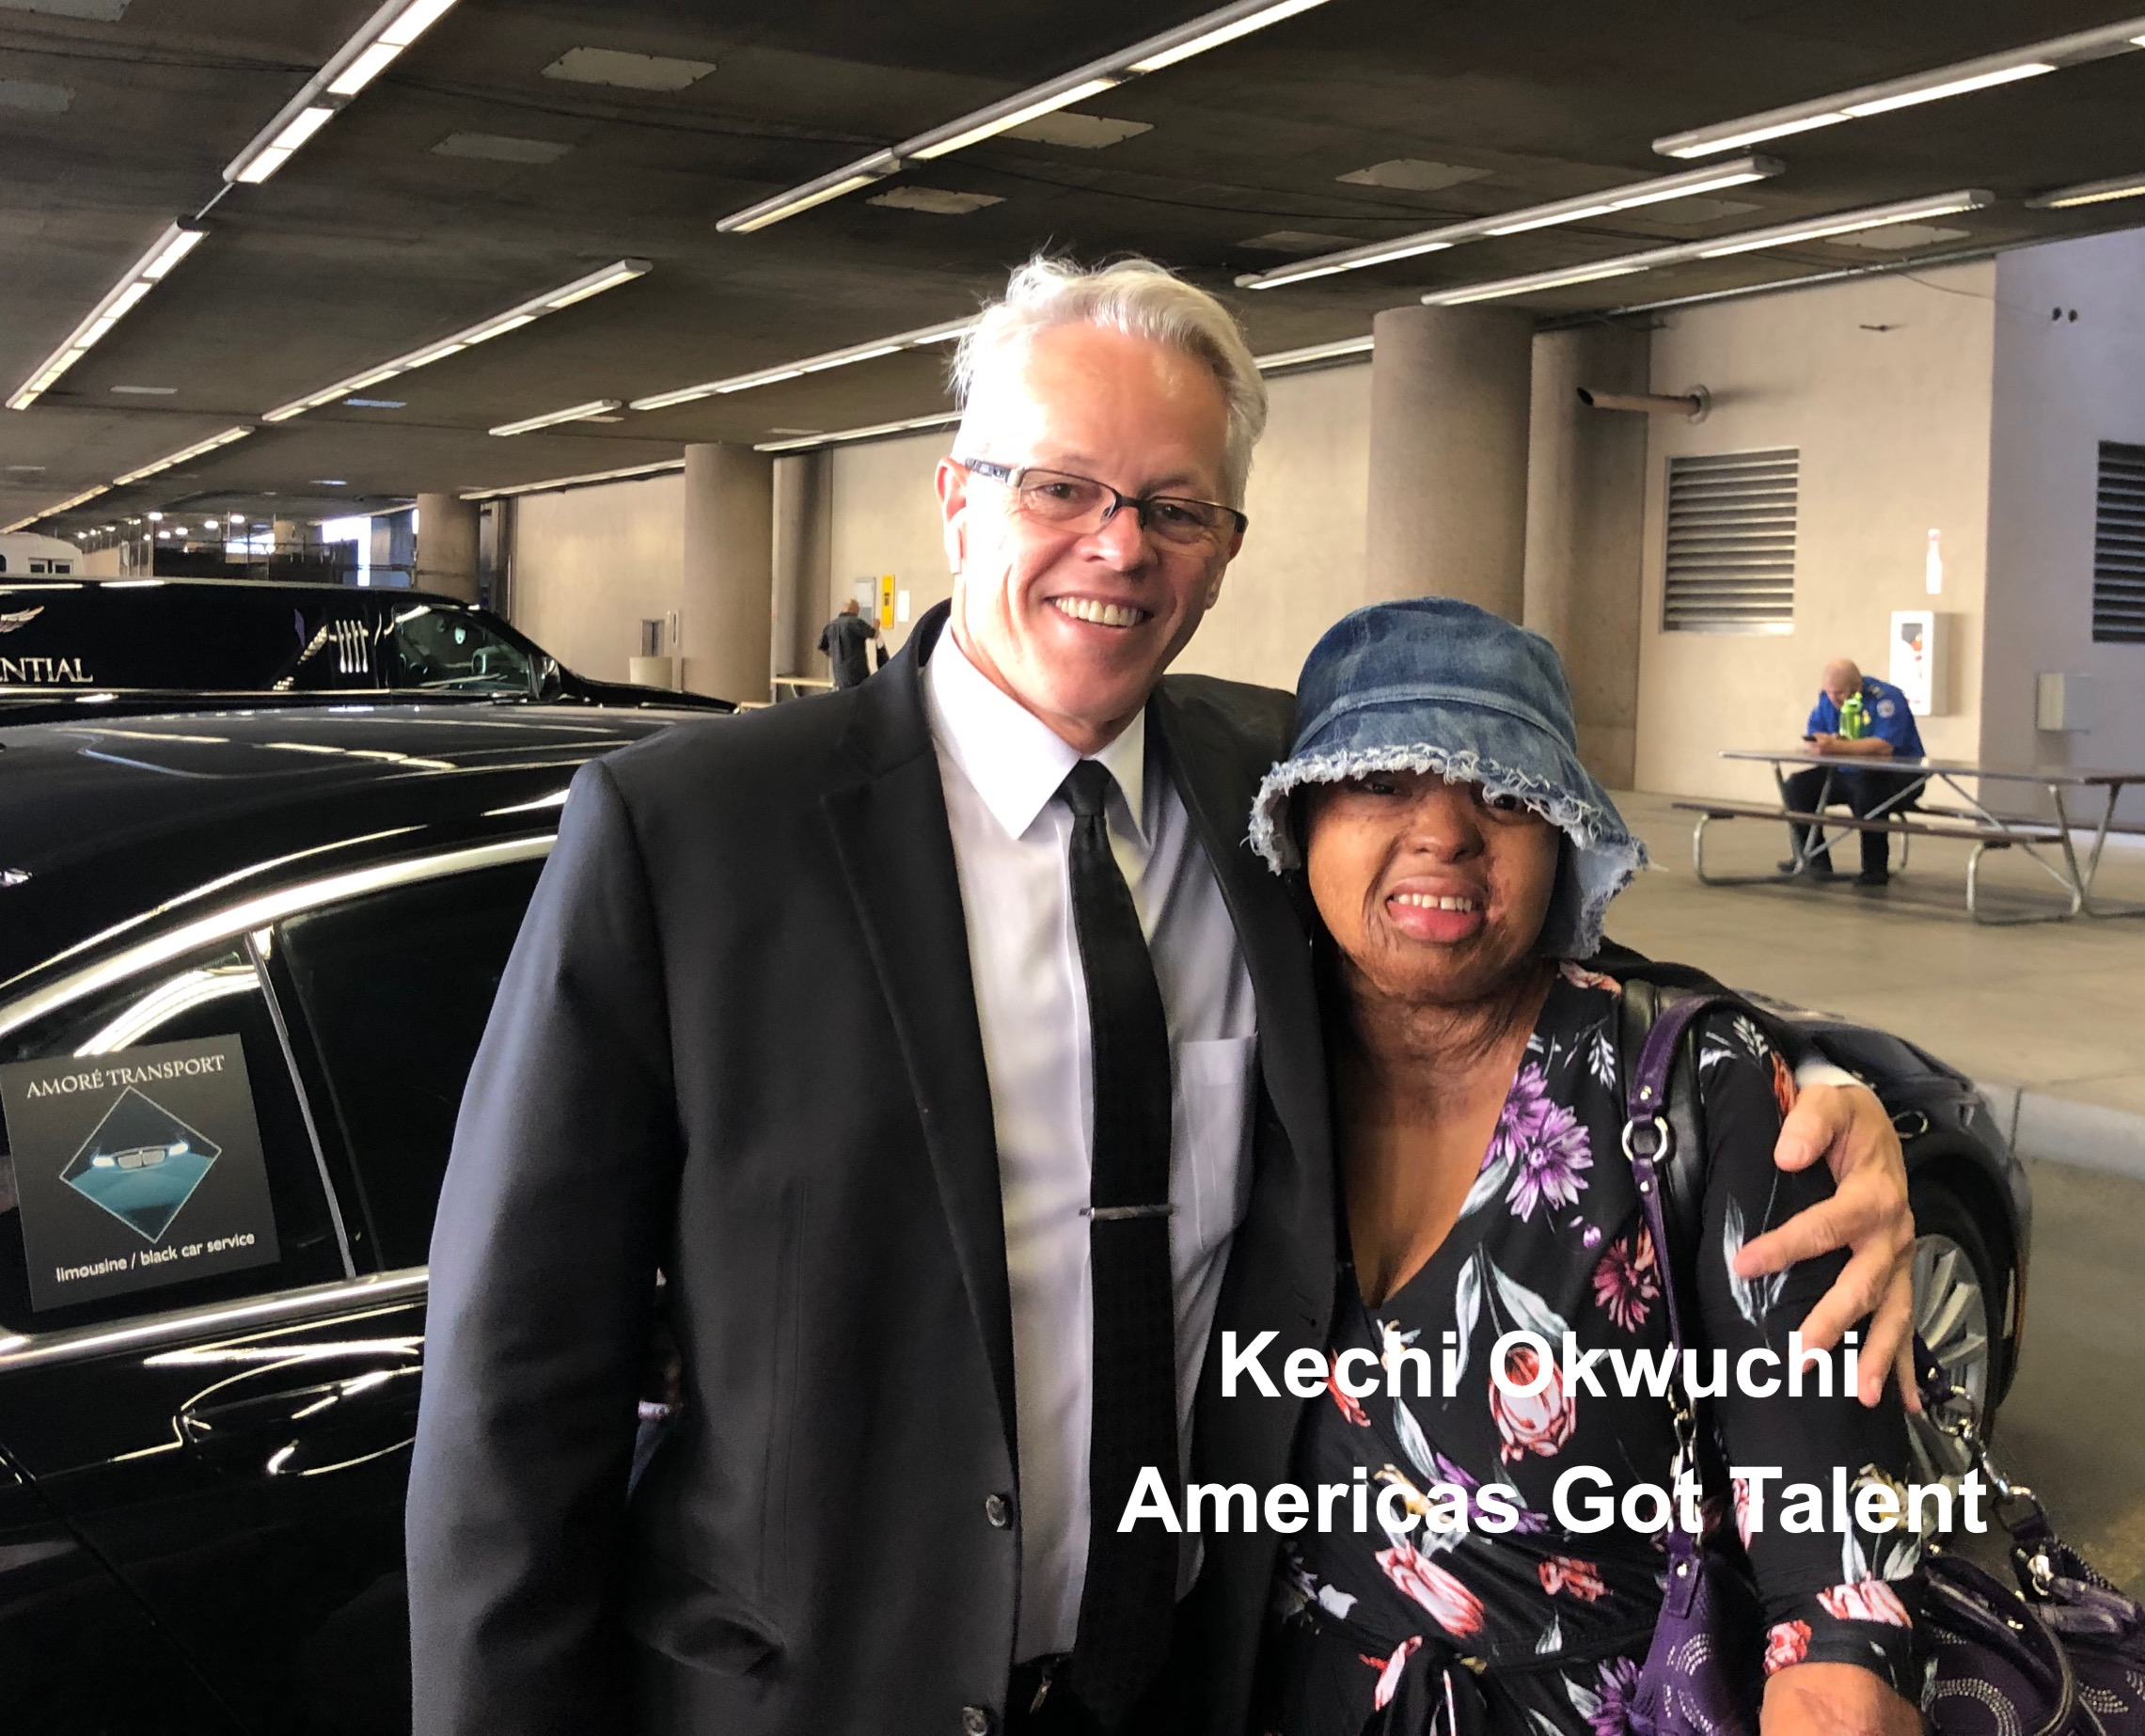 Kechi Okwuchi Americas Got Talent Amore